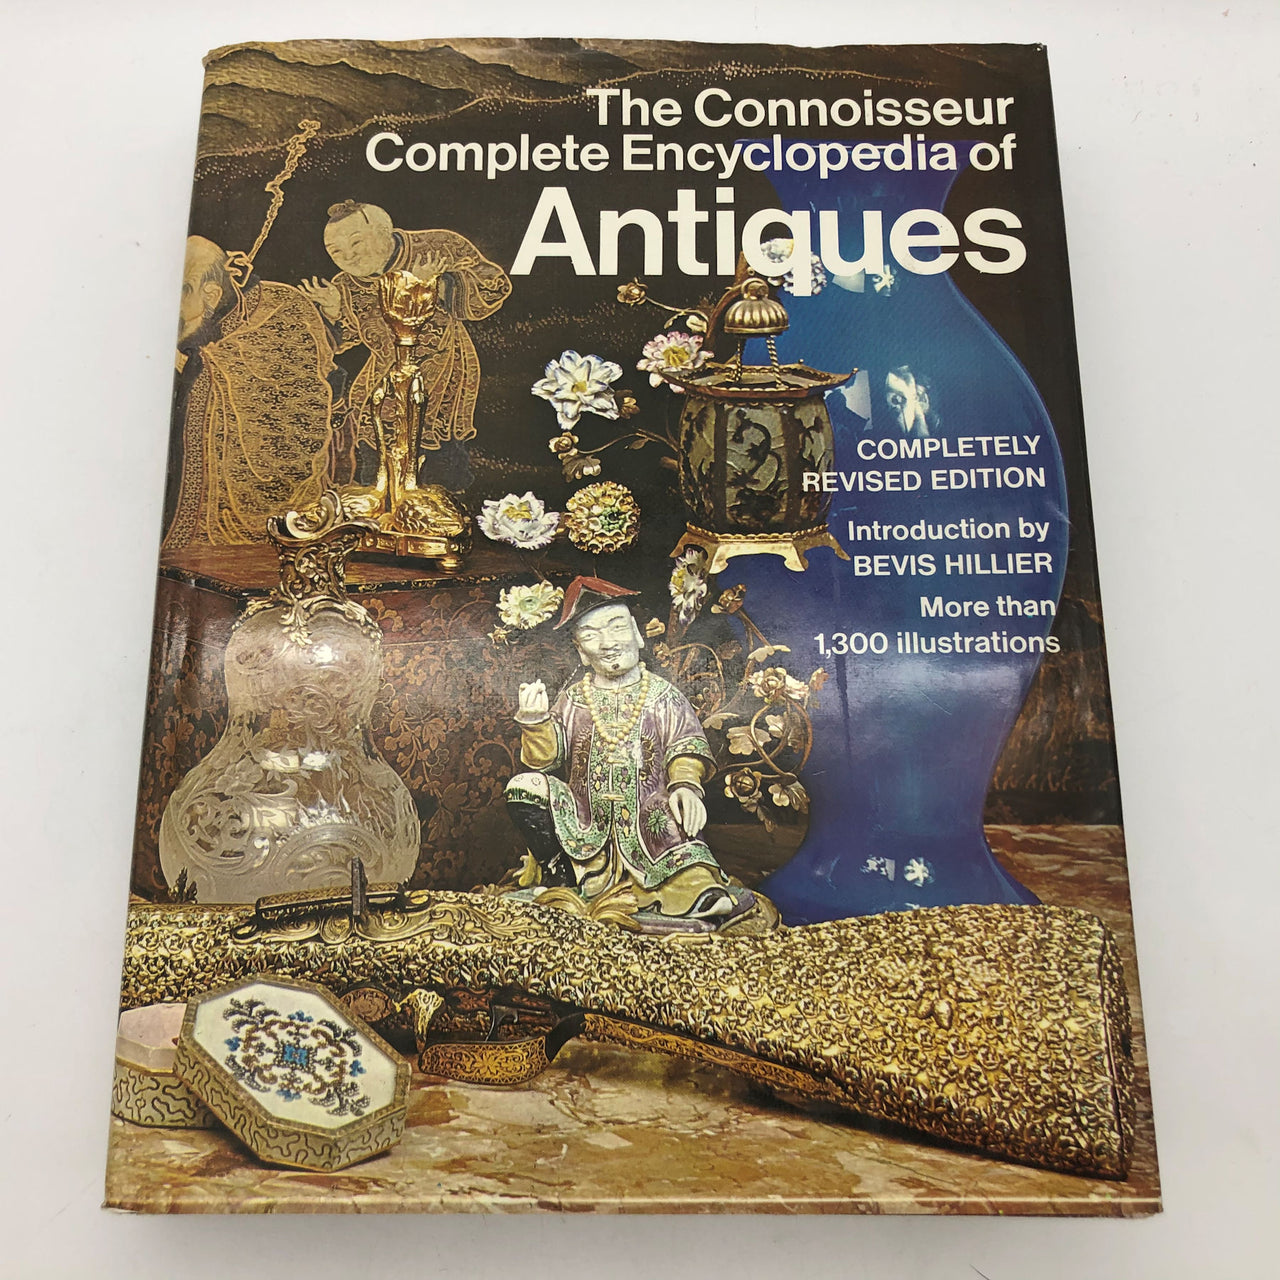 The Connoisseur Complete Encyclopedia of Antiques Hard Cover Book